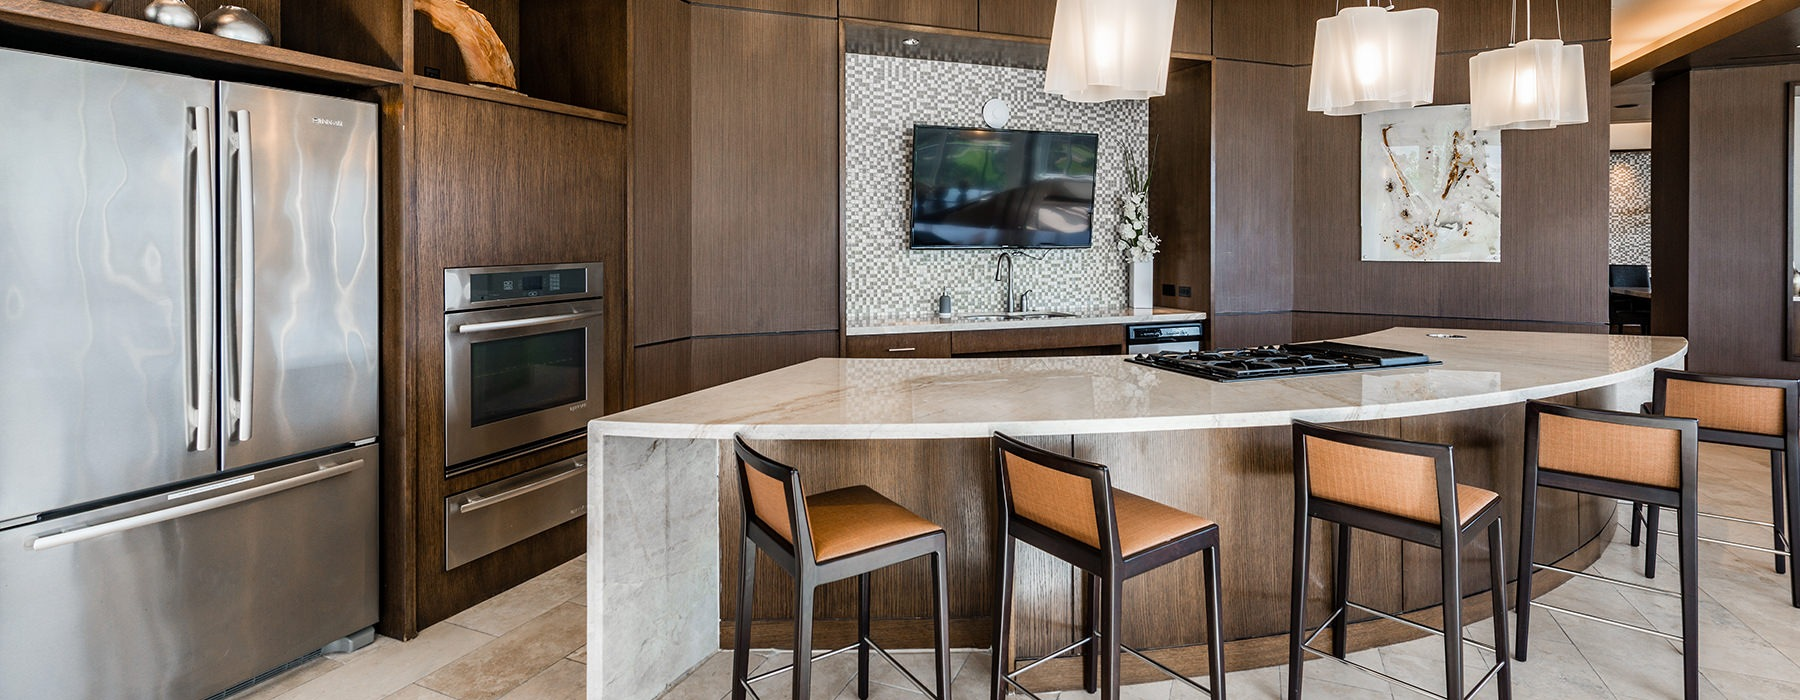 Spacious and well lit demo kitchen with all stainless steel appliances